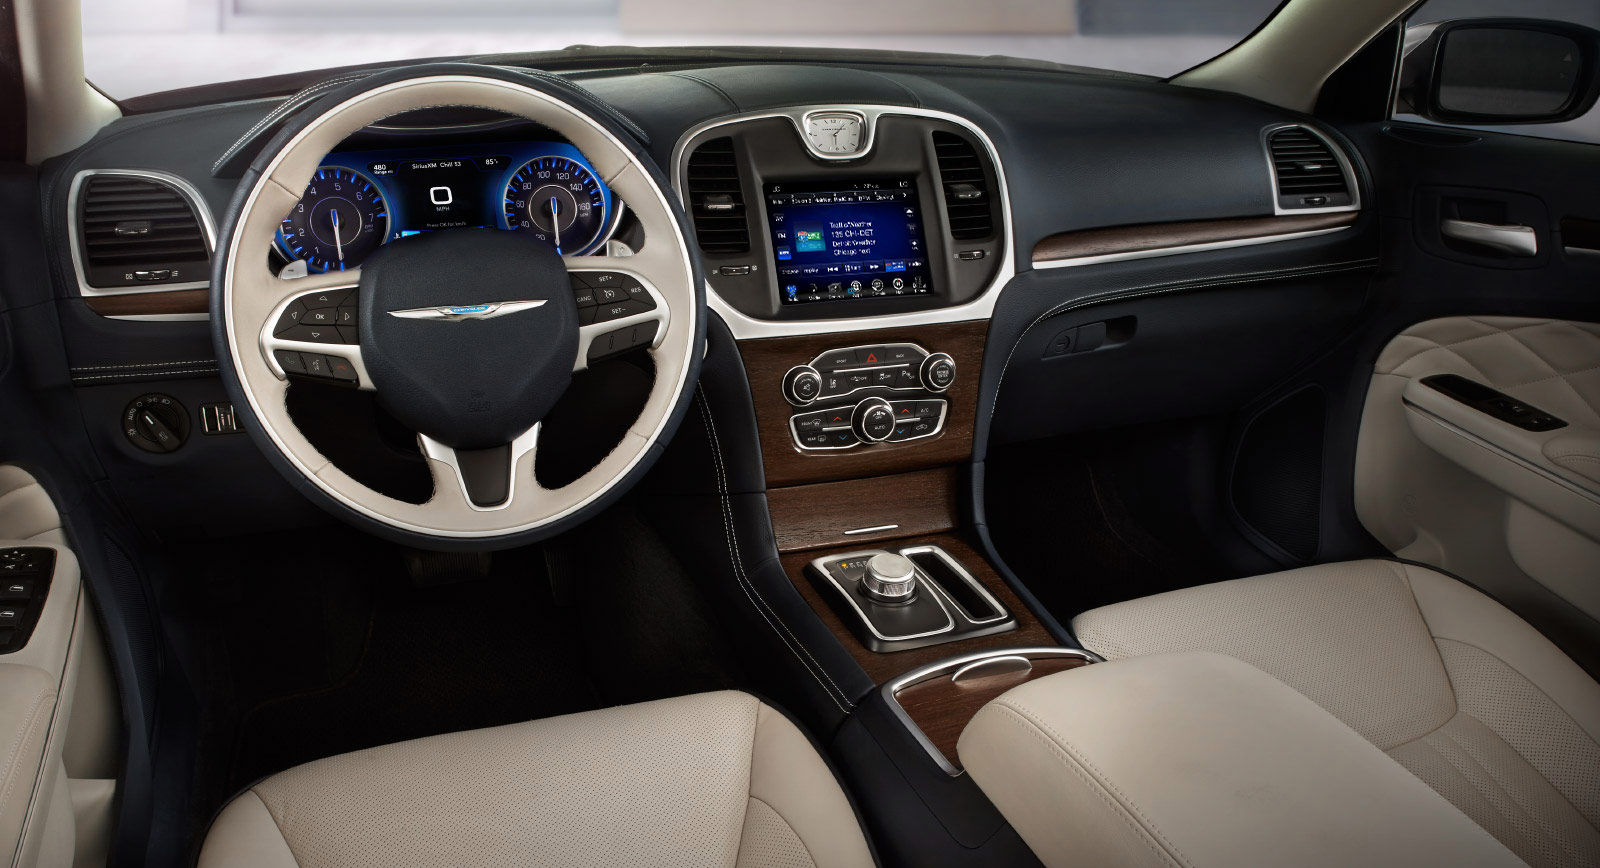 2016 Chrysler 300 Interior